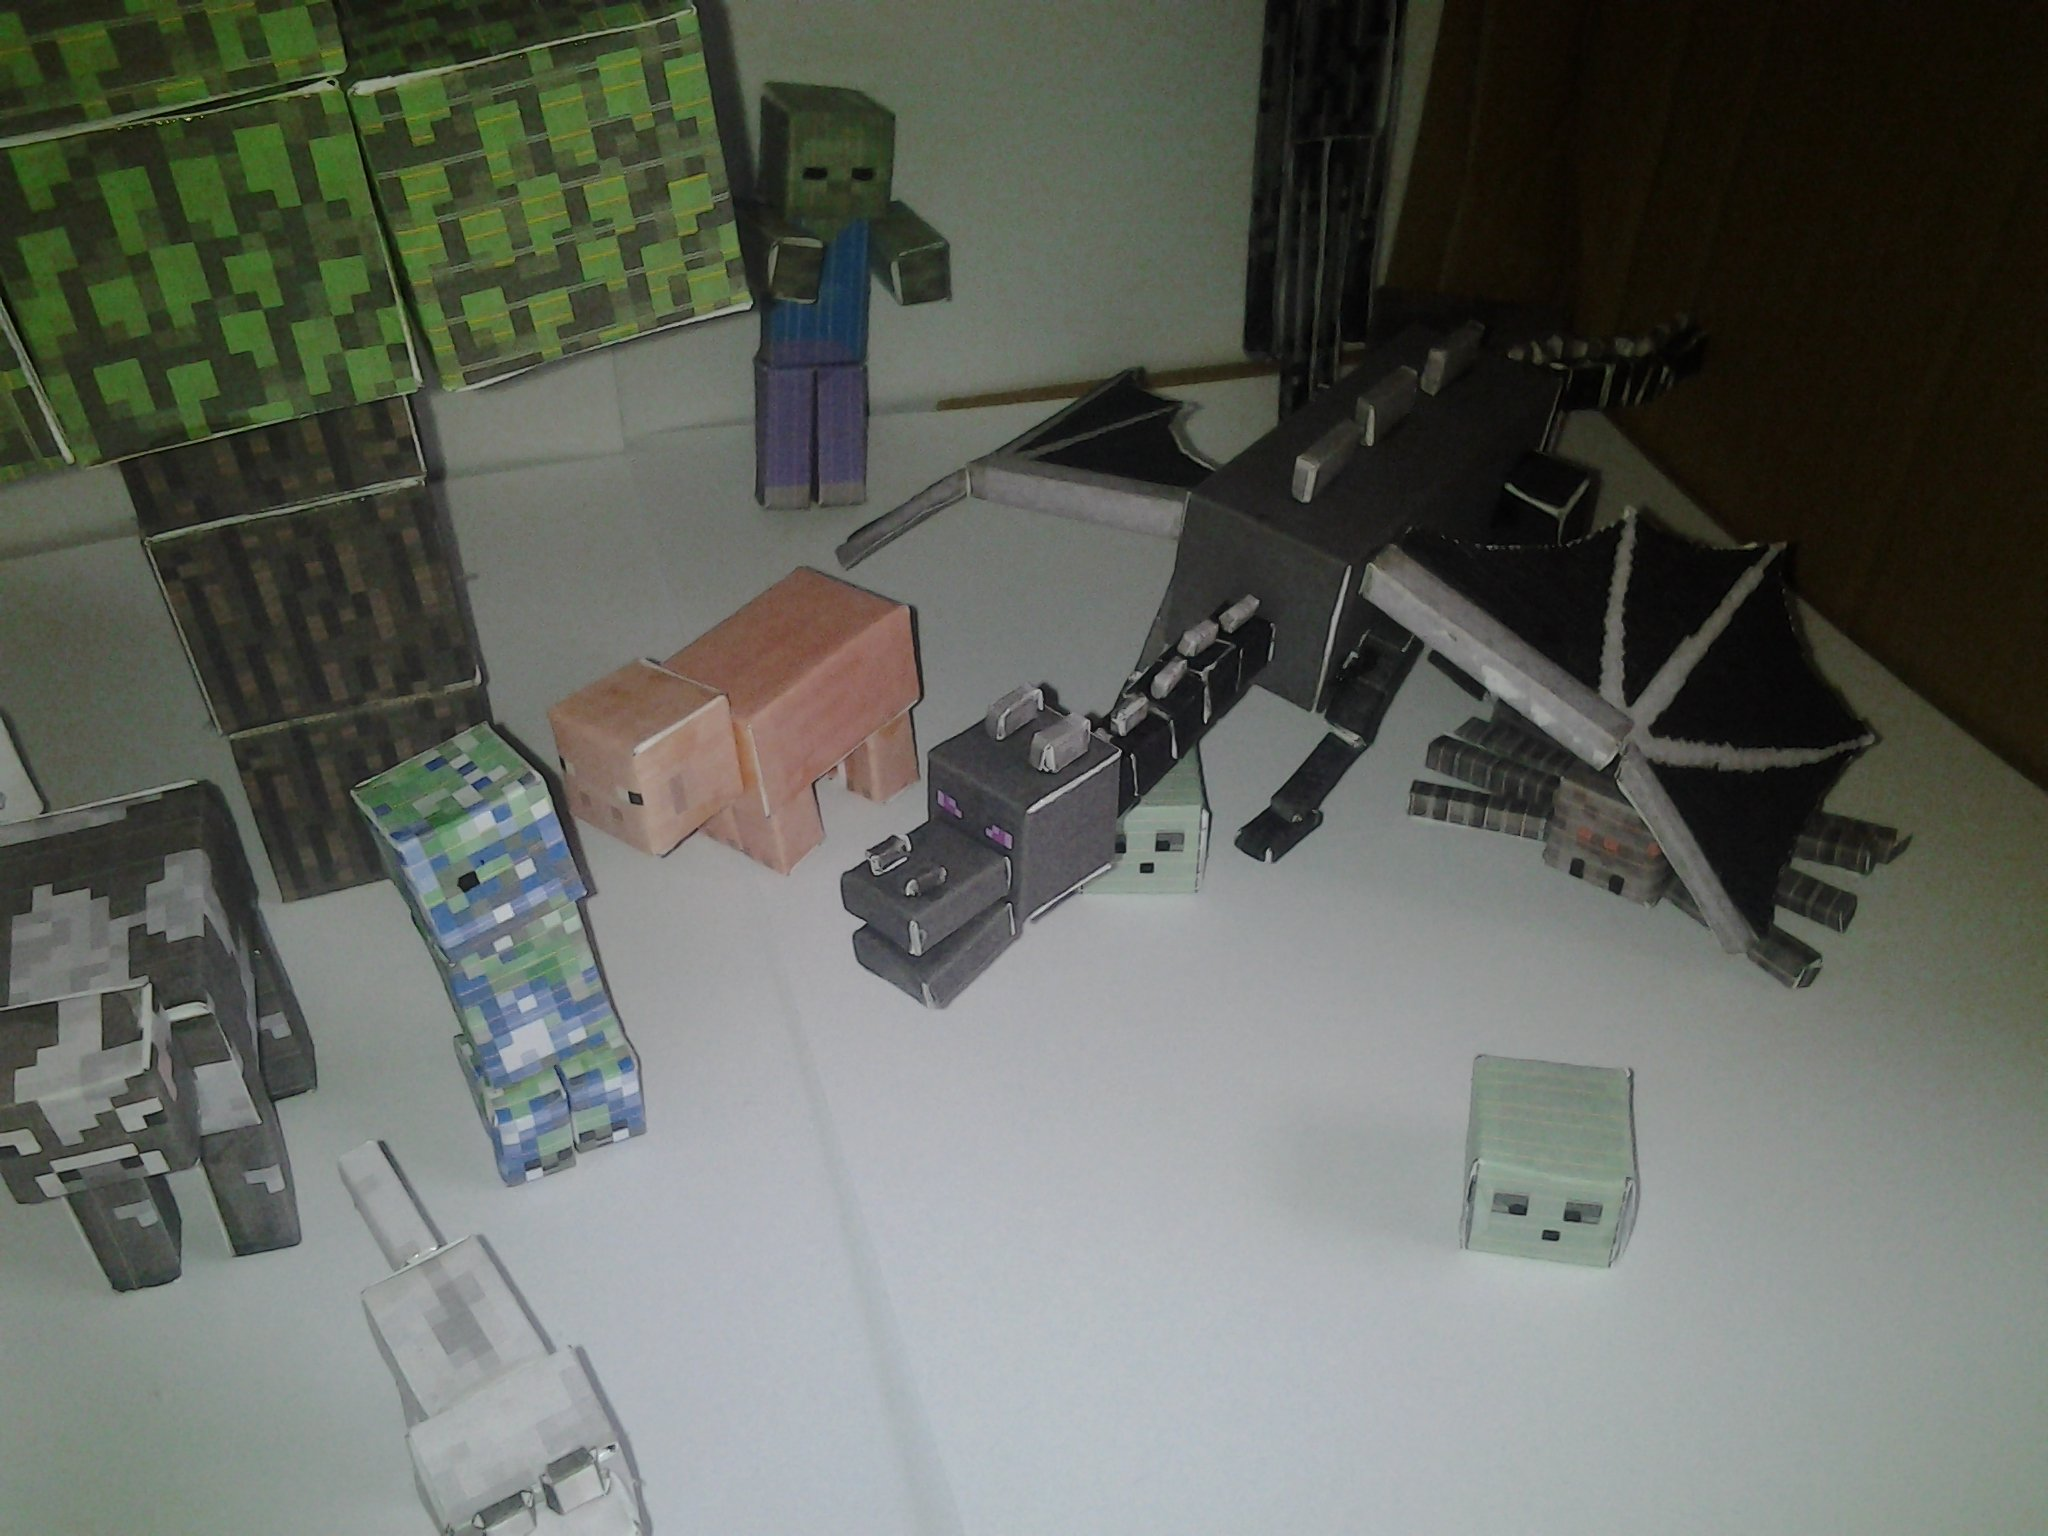 Minecraft Papercraft Model Scene Lots Of Animals Mobs And The Enderdragon